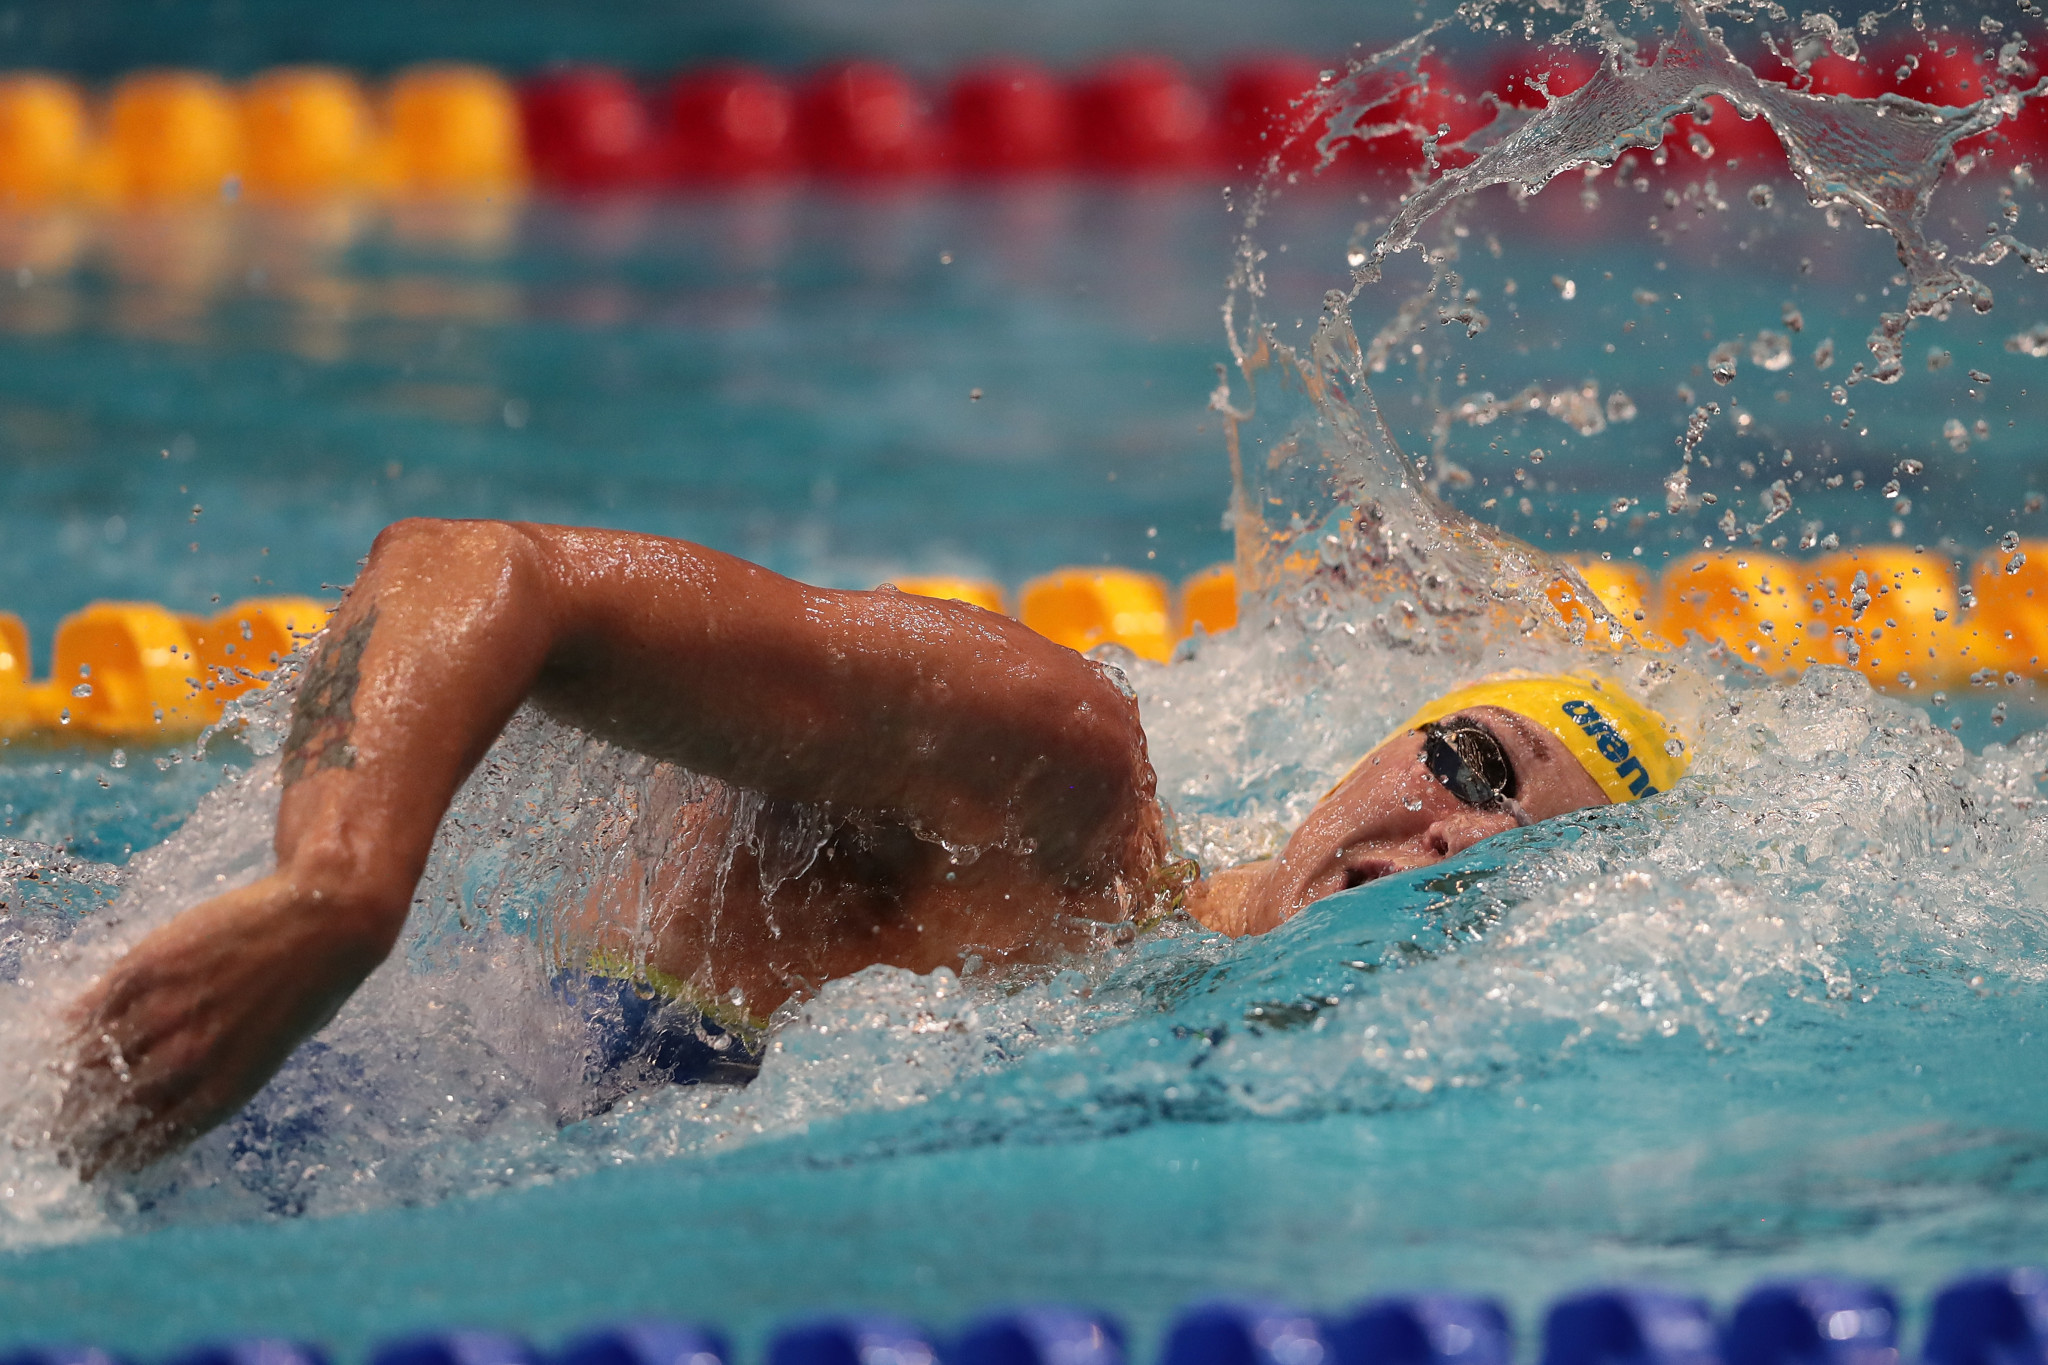 Sarah Sjöström of Sweden and Chad le Clos of South Africa strengthened their position at the summit of the overall women's and men's leaderboards as they each recorded two victories ©Getty Images